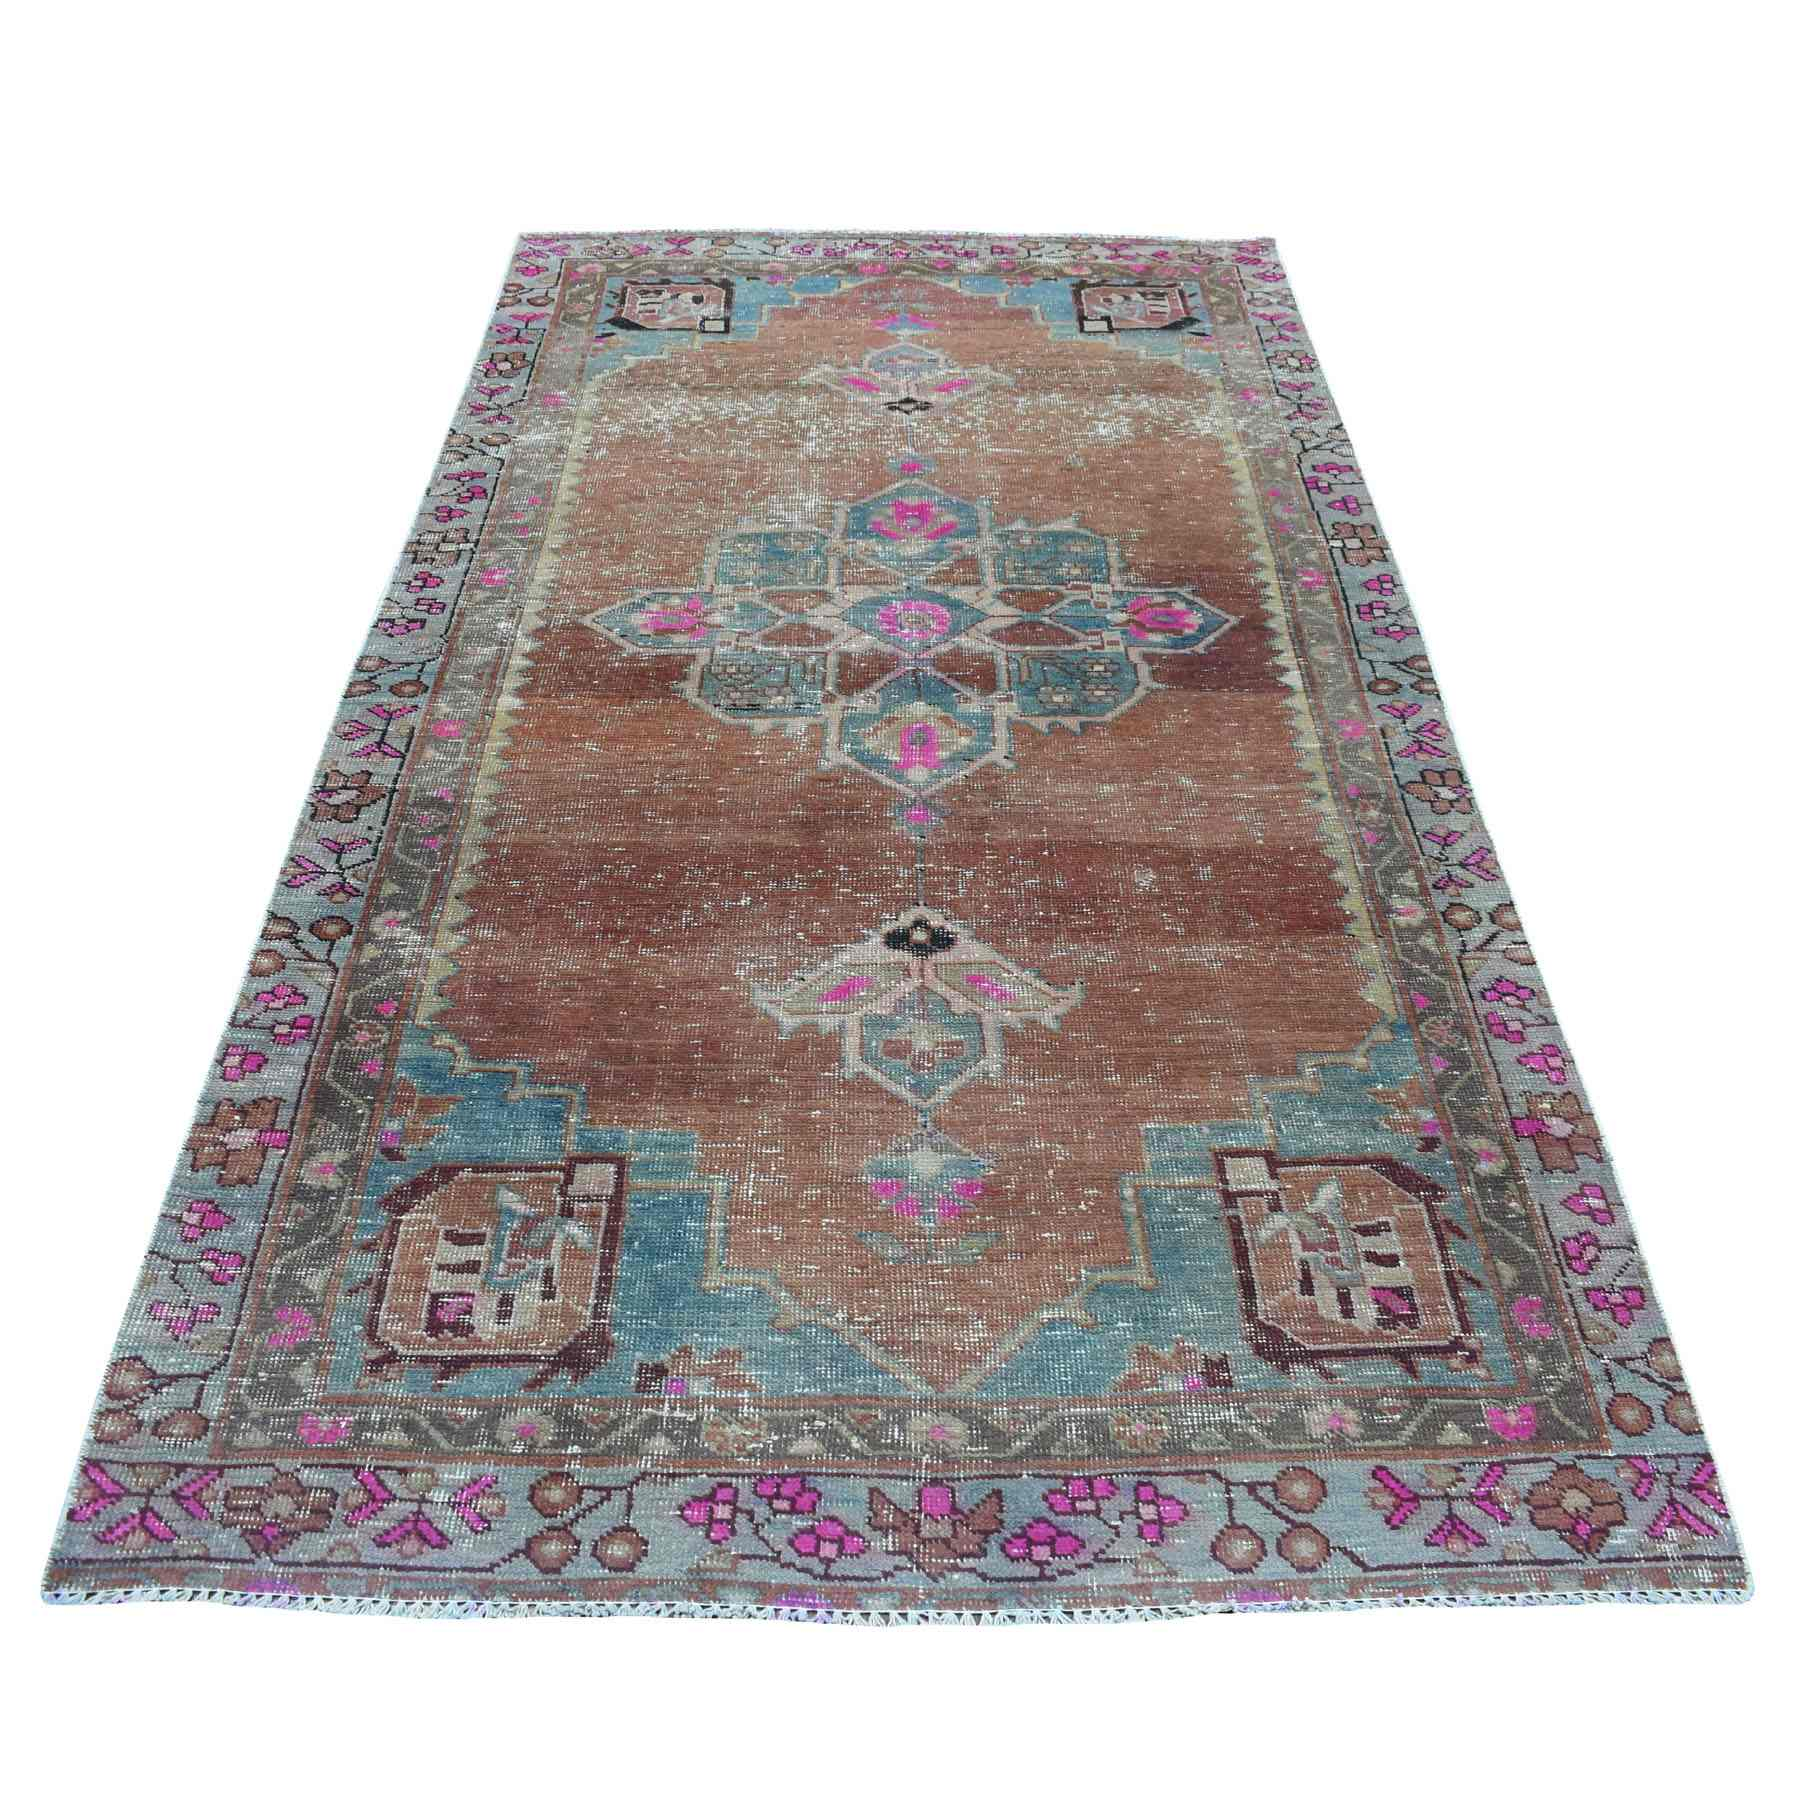 Overdyed-Vintage-Hand-Knotted-Rug-270250